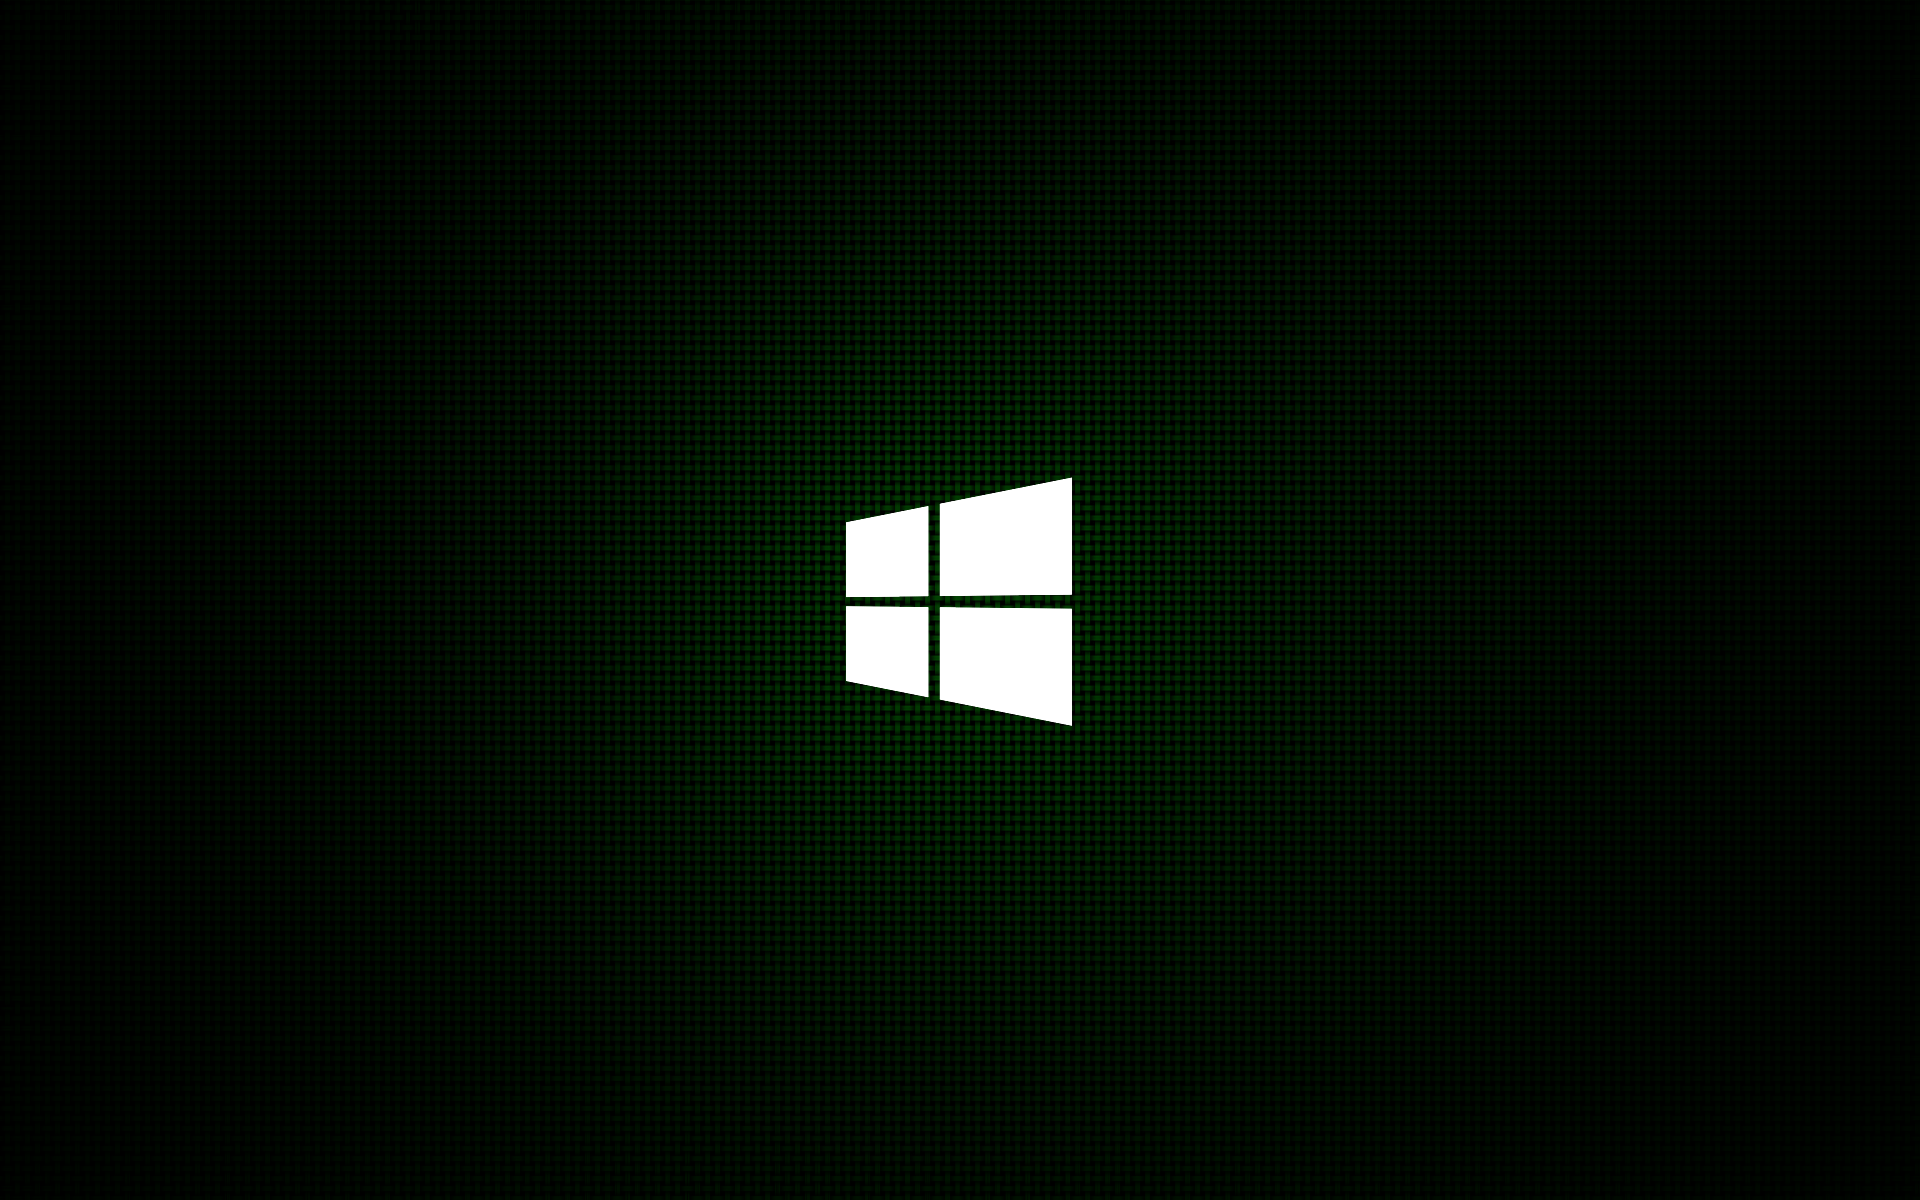 hd green minimal windows 8 logo - hd wallpapers